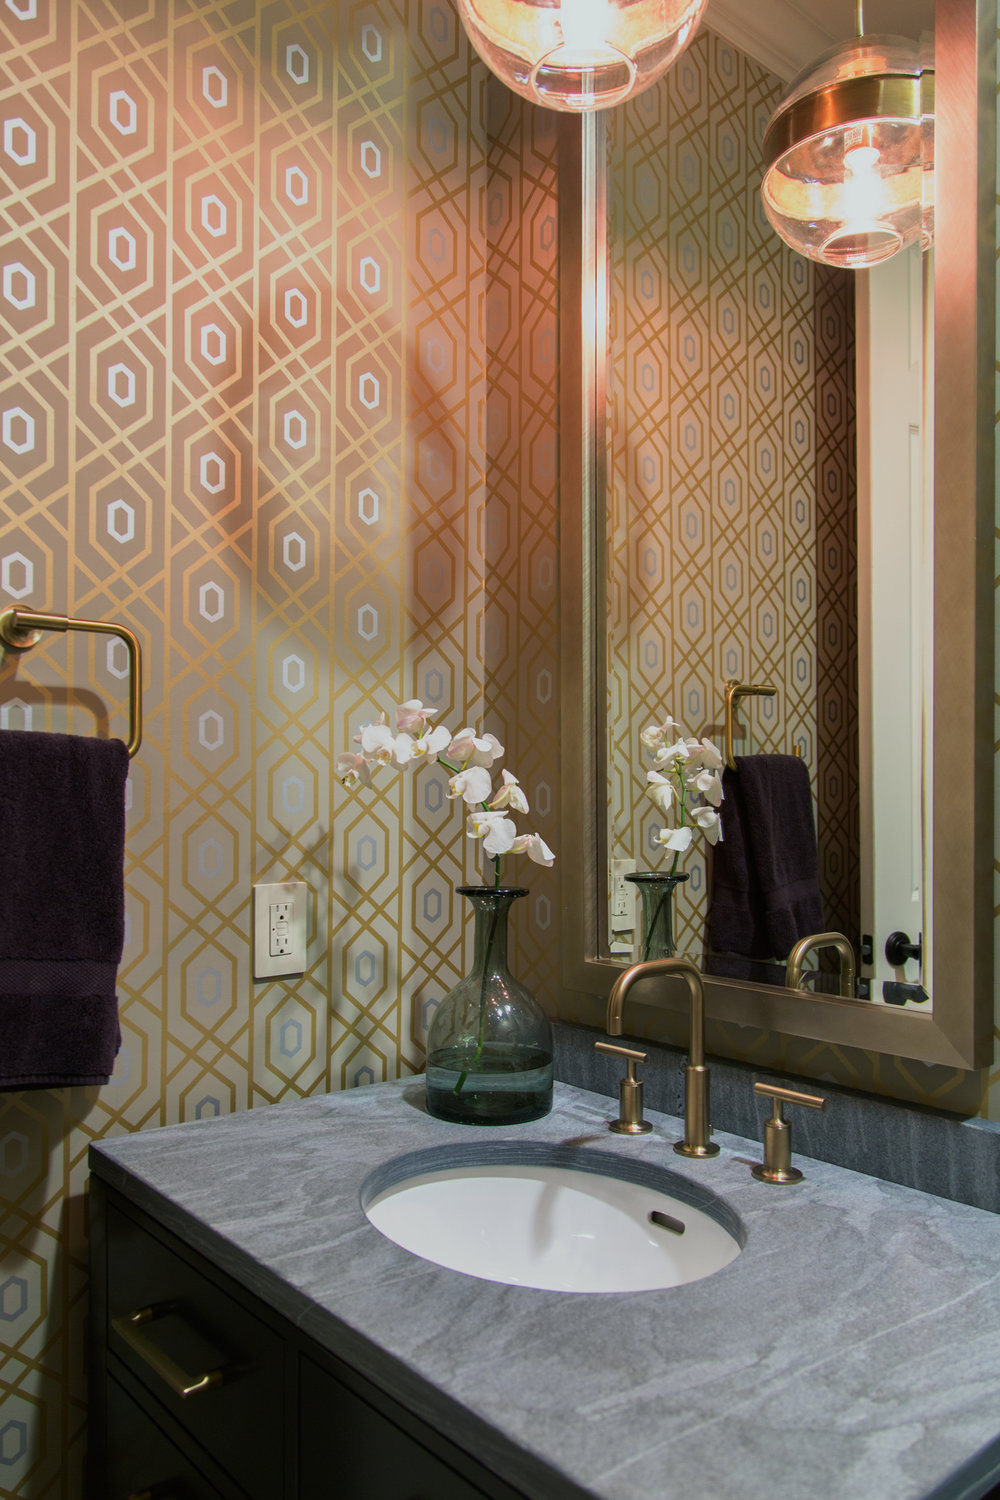 POWDER BATH ROUND UP |Powder room remodel with metallic wallpaper and pendant light fixture reflected in mirror featured in  this home's remodel  | Designer: Carla Aston, Photographer: Tori Aston #powderbath #powderroom